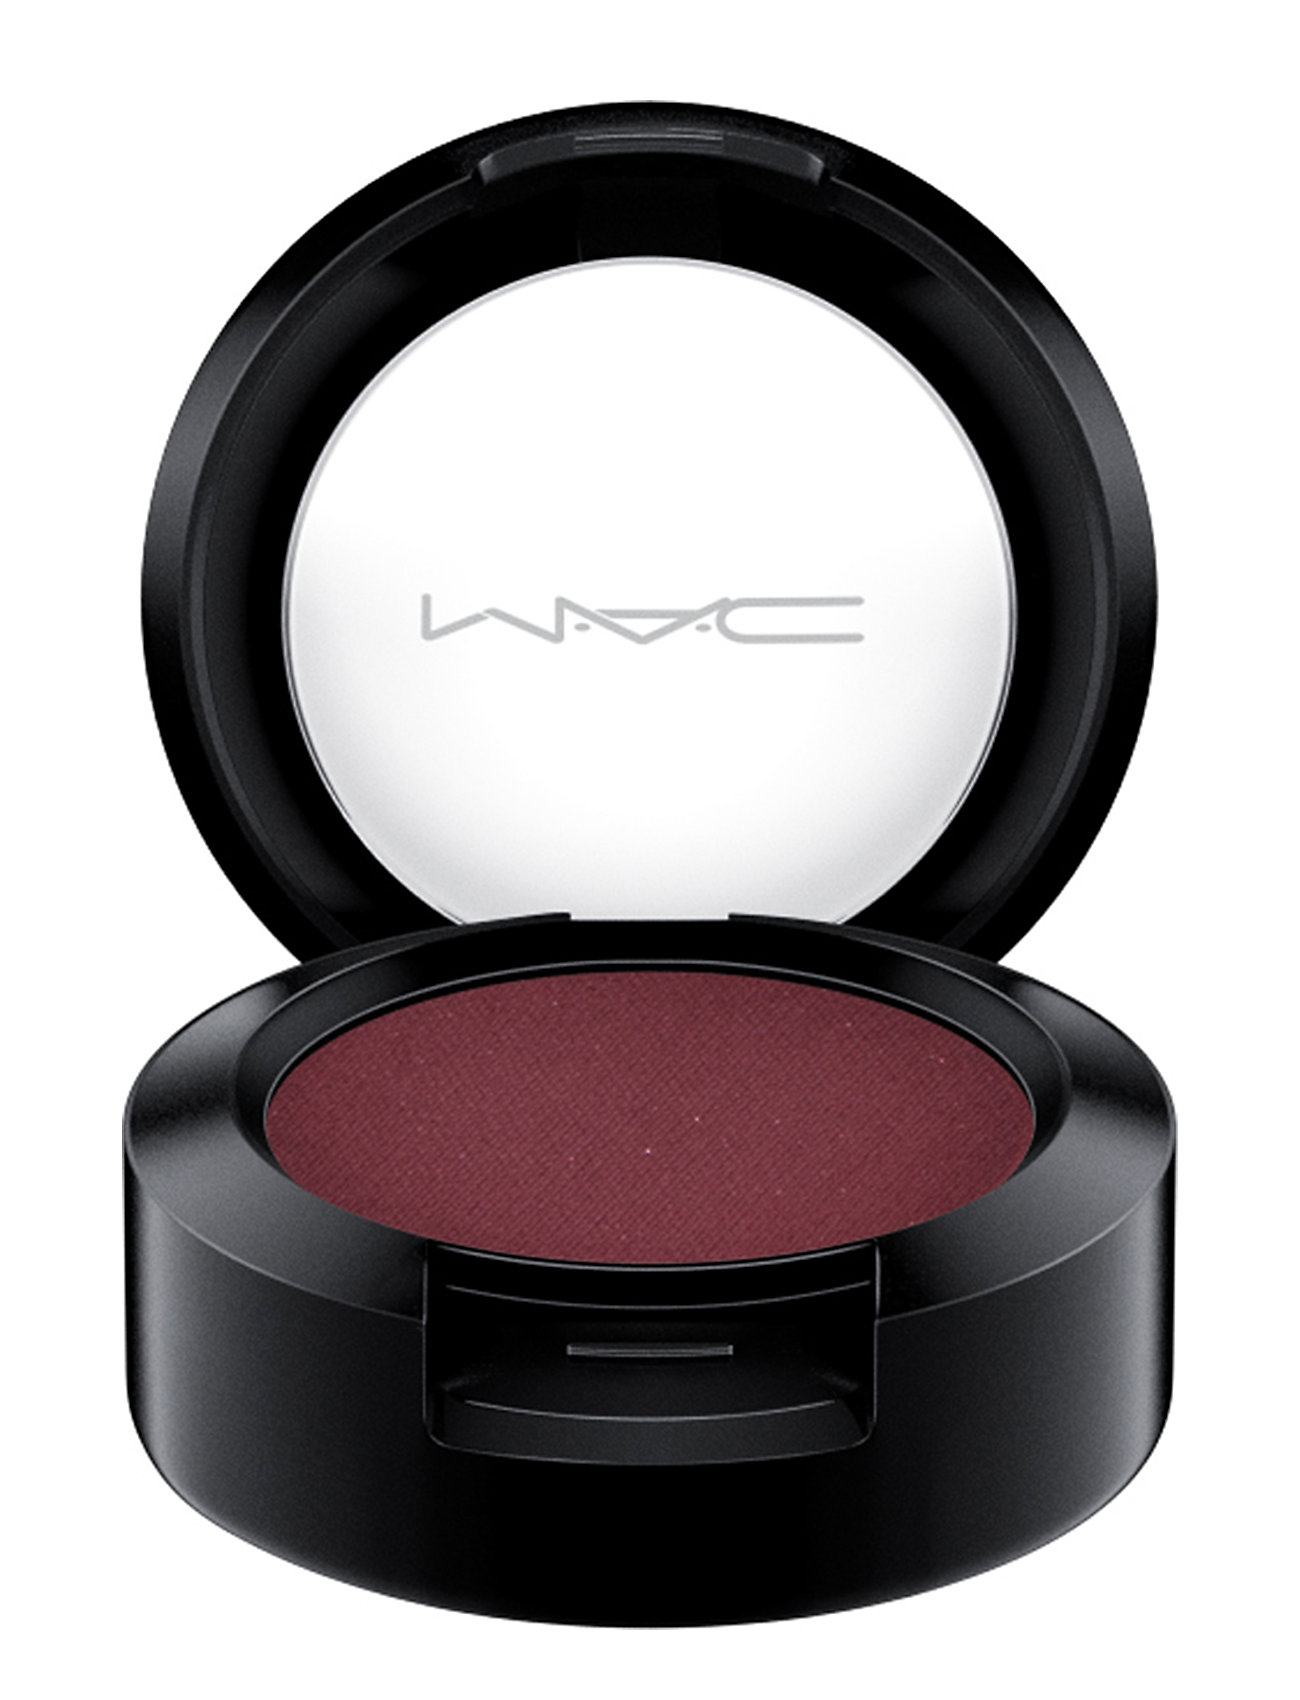 Image of Small Eye Shadow Beauty WOMEN Makeup Eyes Eyeshadow - Not Palettes Rød M.A.C. (3260672967)